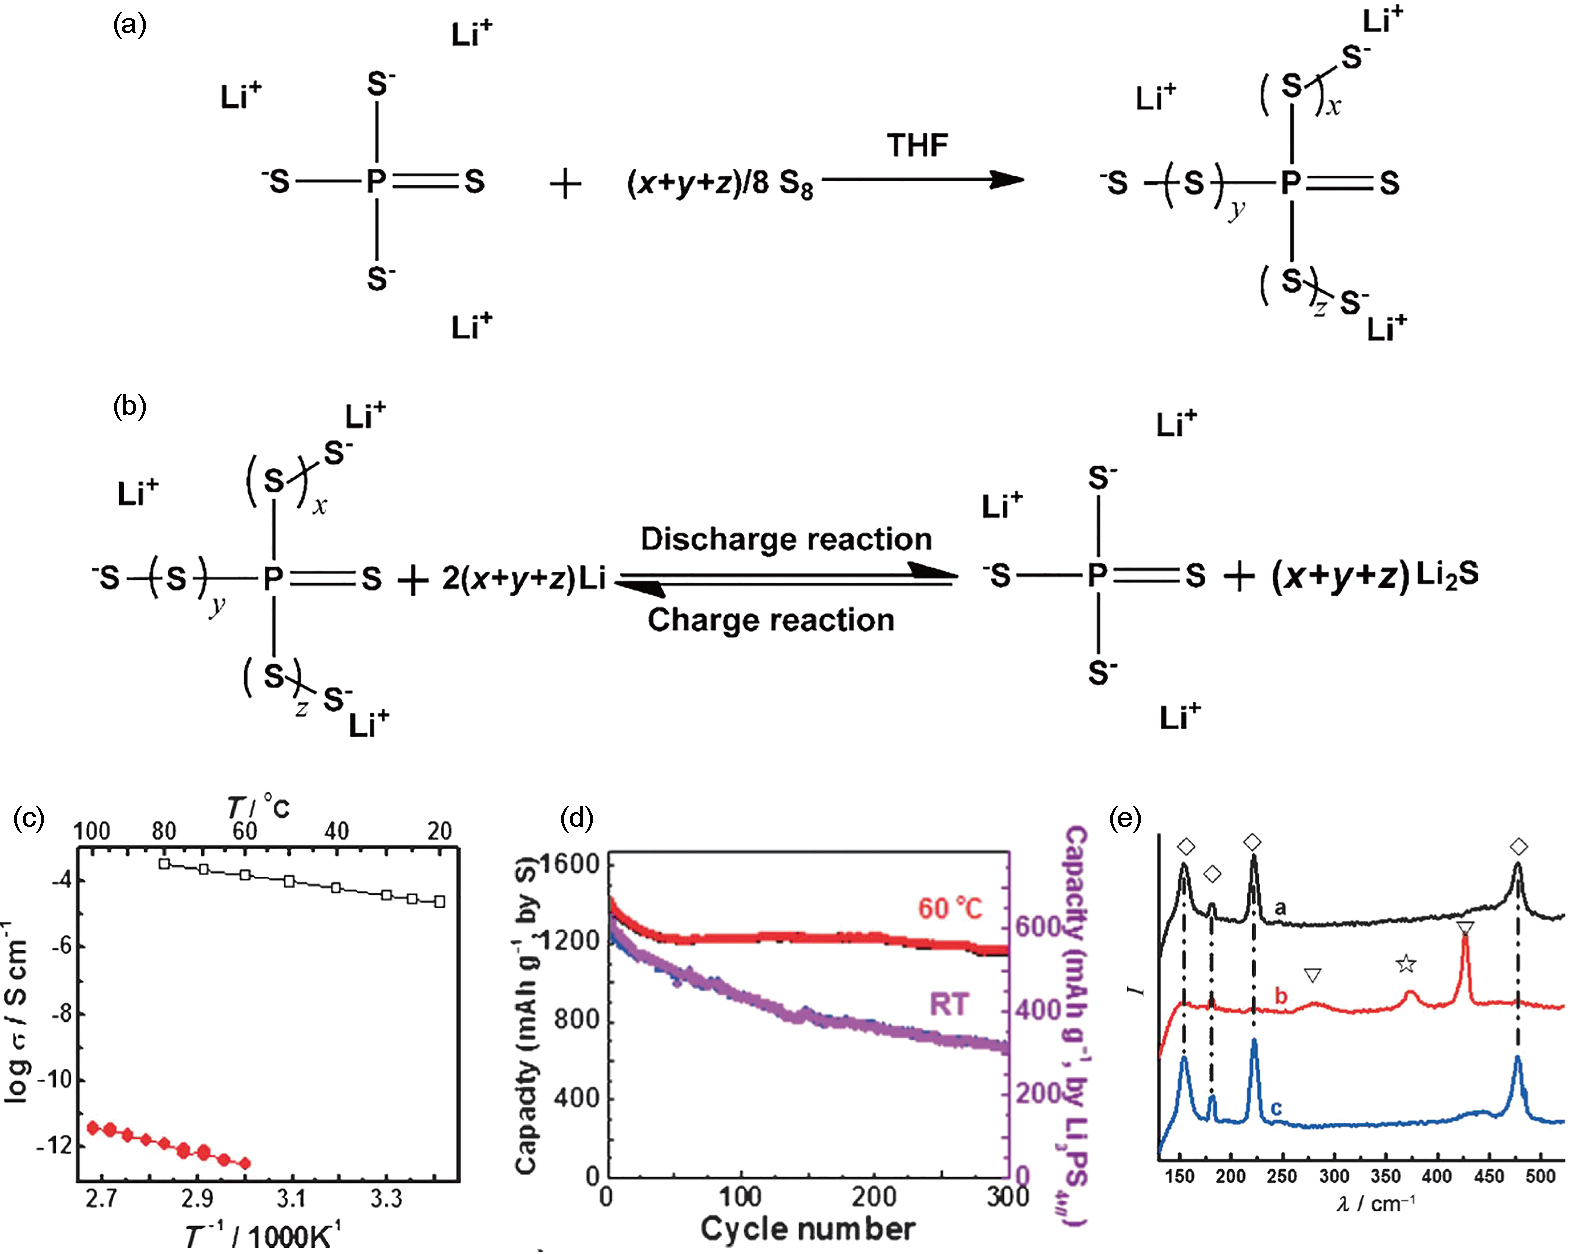 A review of solid electrolytes for safe lithium-sulfur batteries